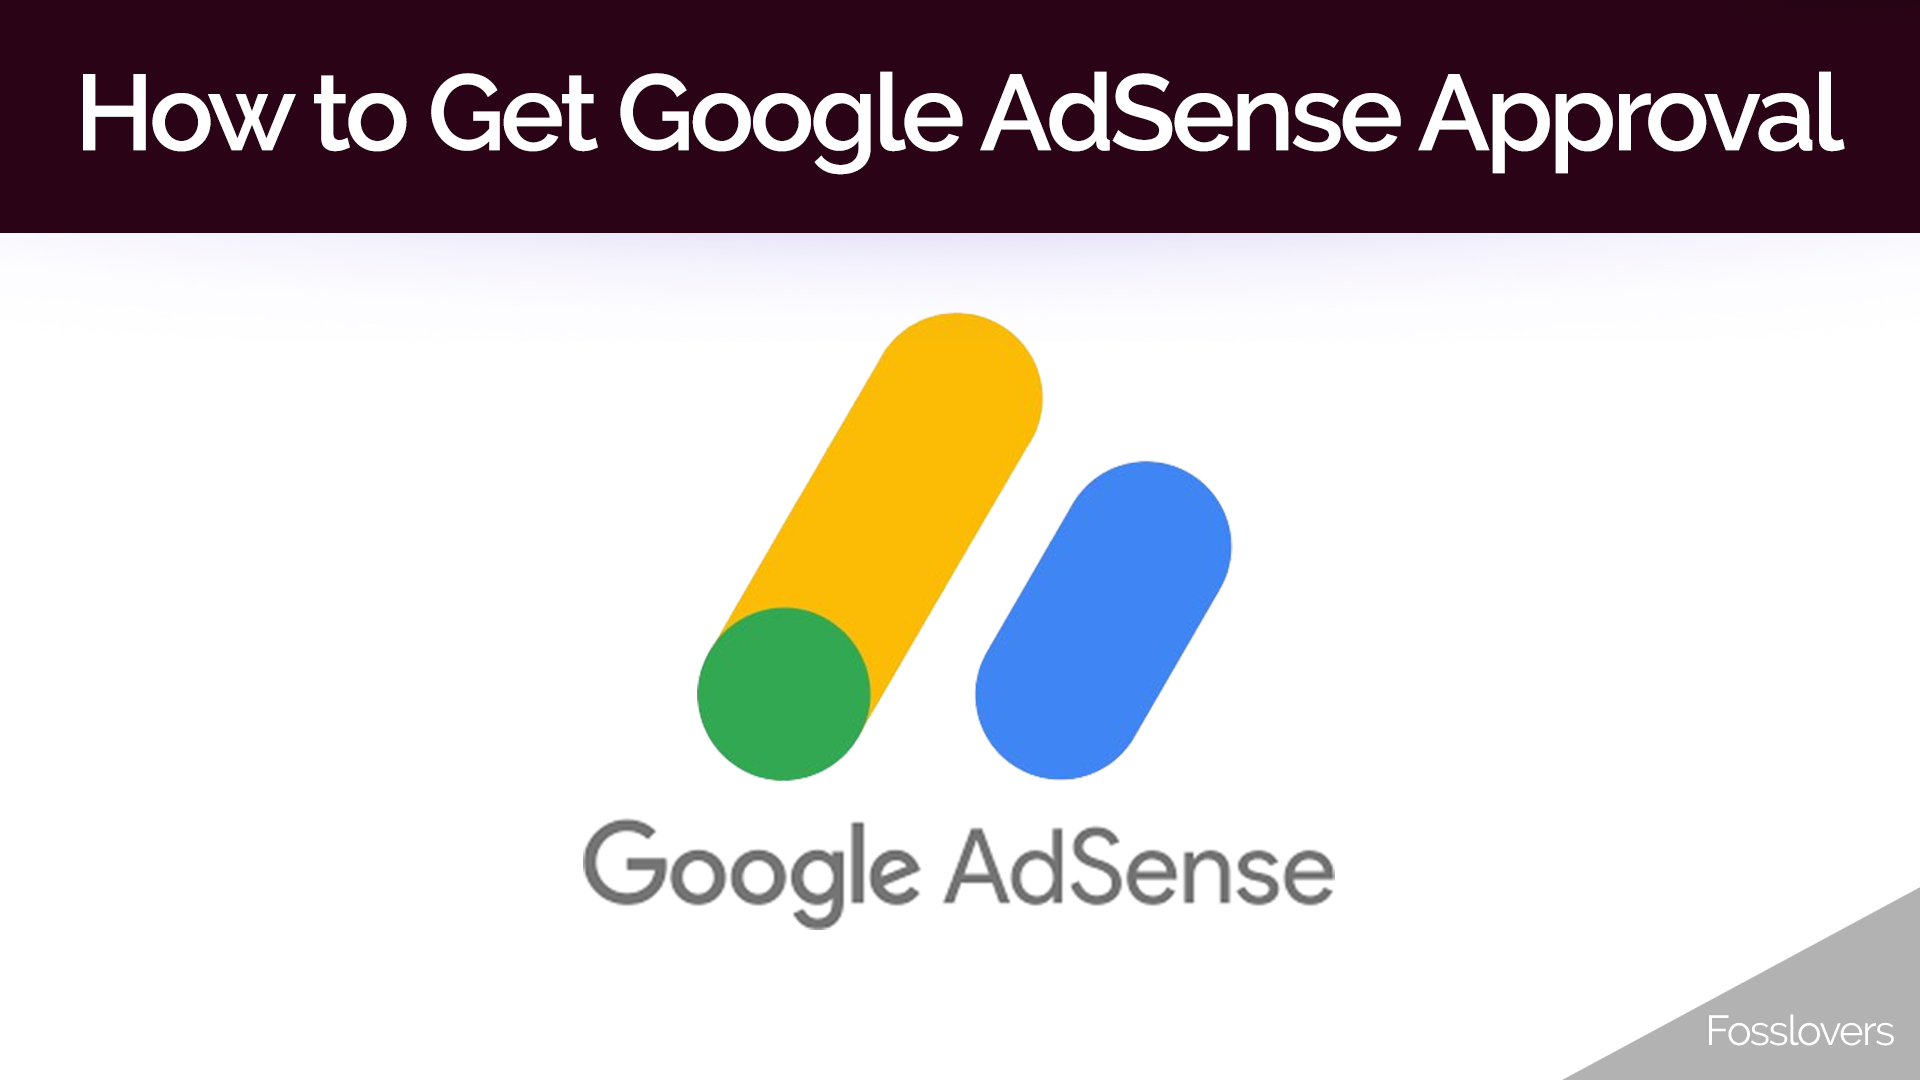 How to Get Google AdSense Approval in 2018